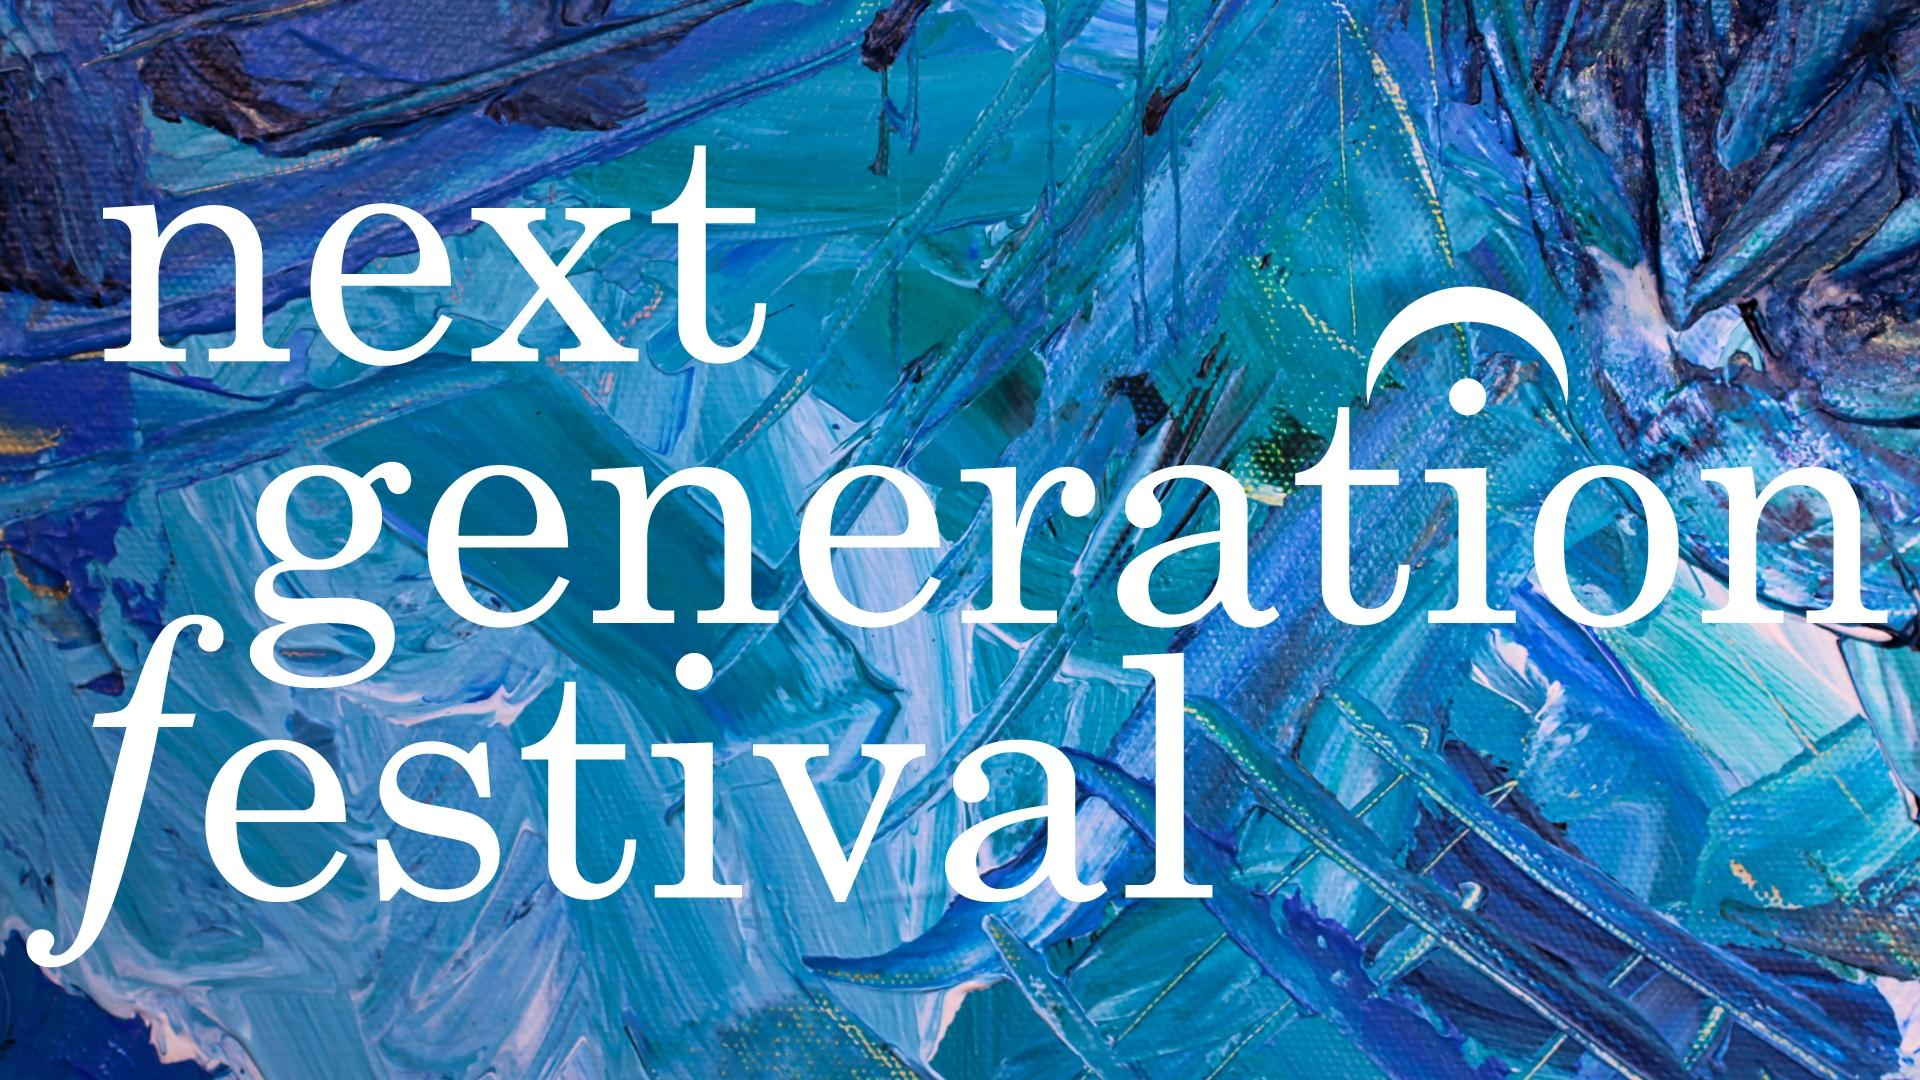 Next Generation Festival logo in white, serif type on a painting-like textured blue and white background.